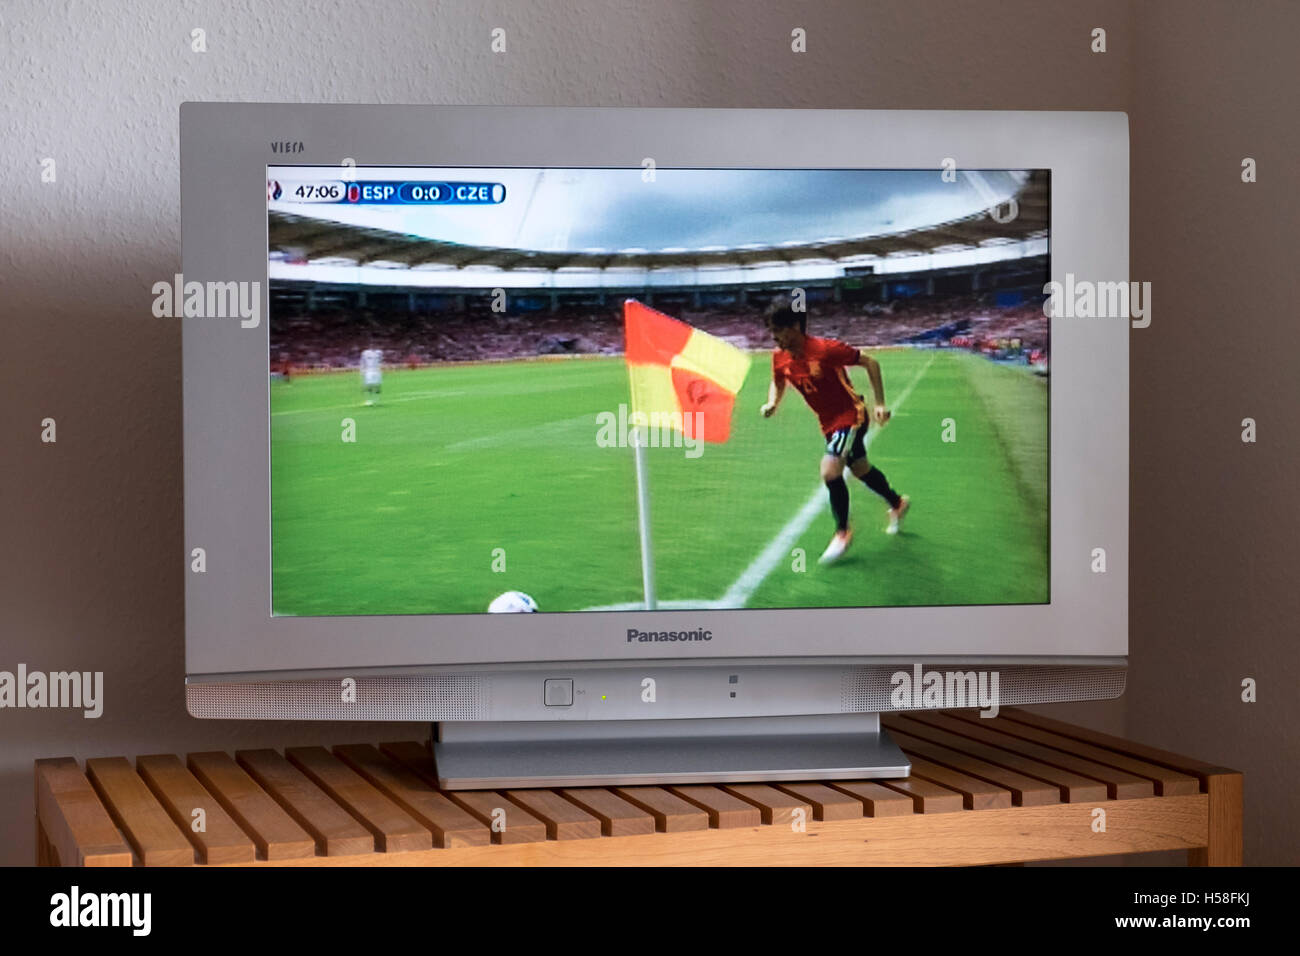 David Silva taking a corner kick for Spain in the Euro 2016 competition shown live on German television 1 - Stock Image